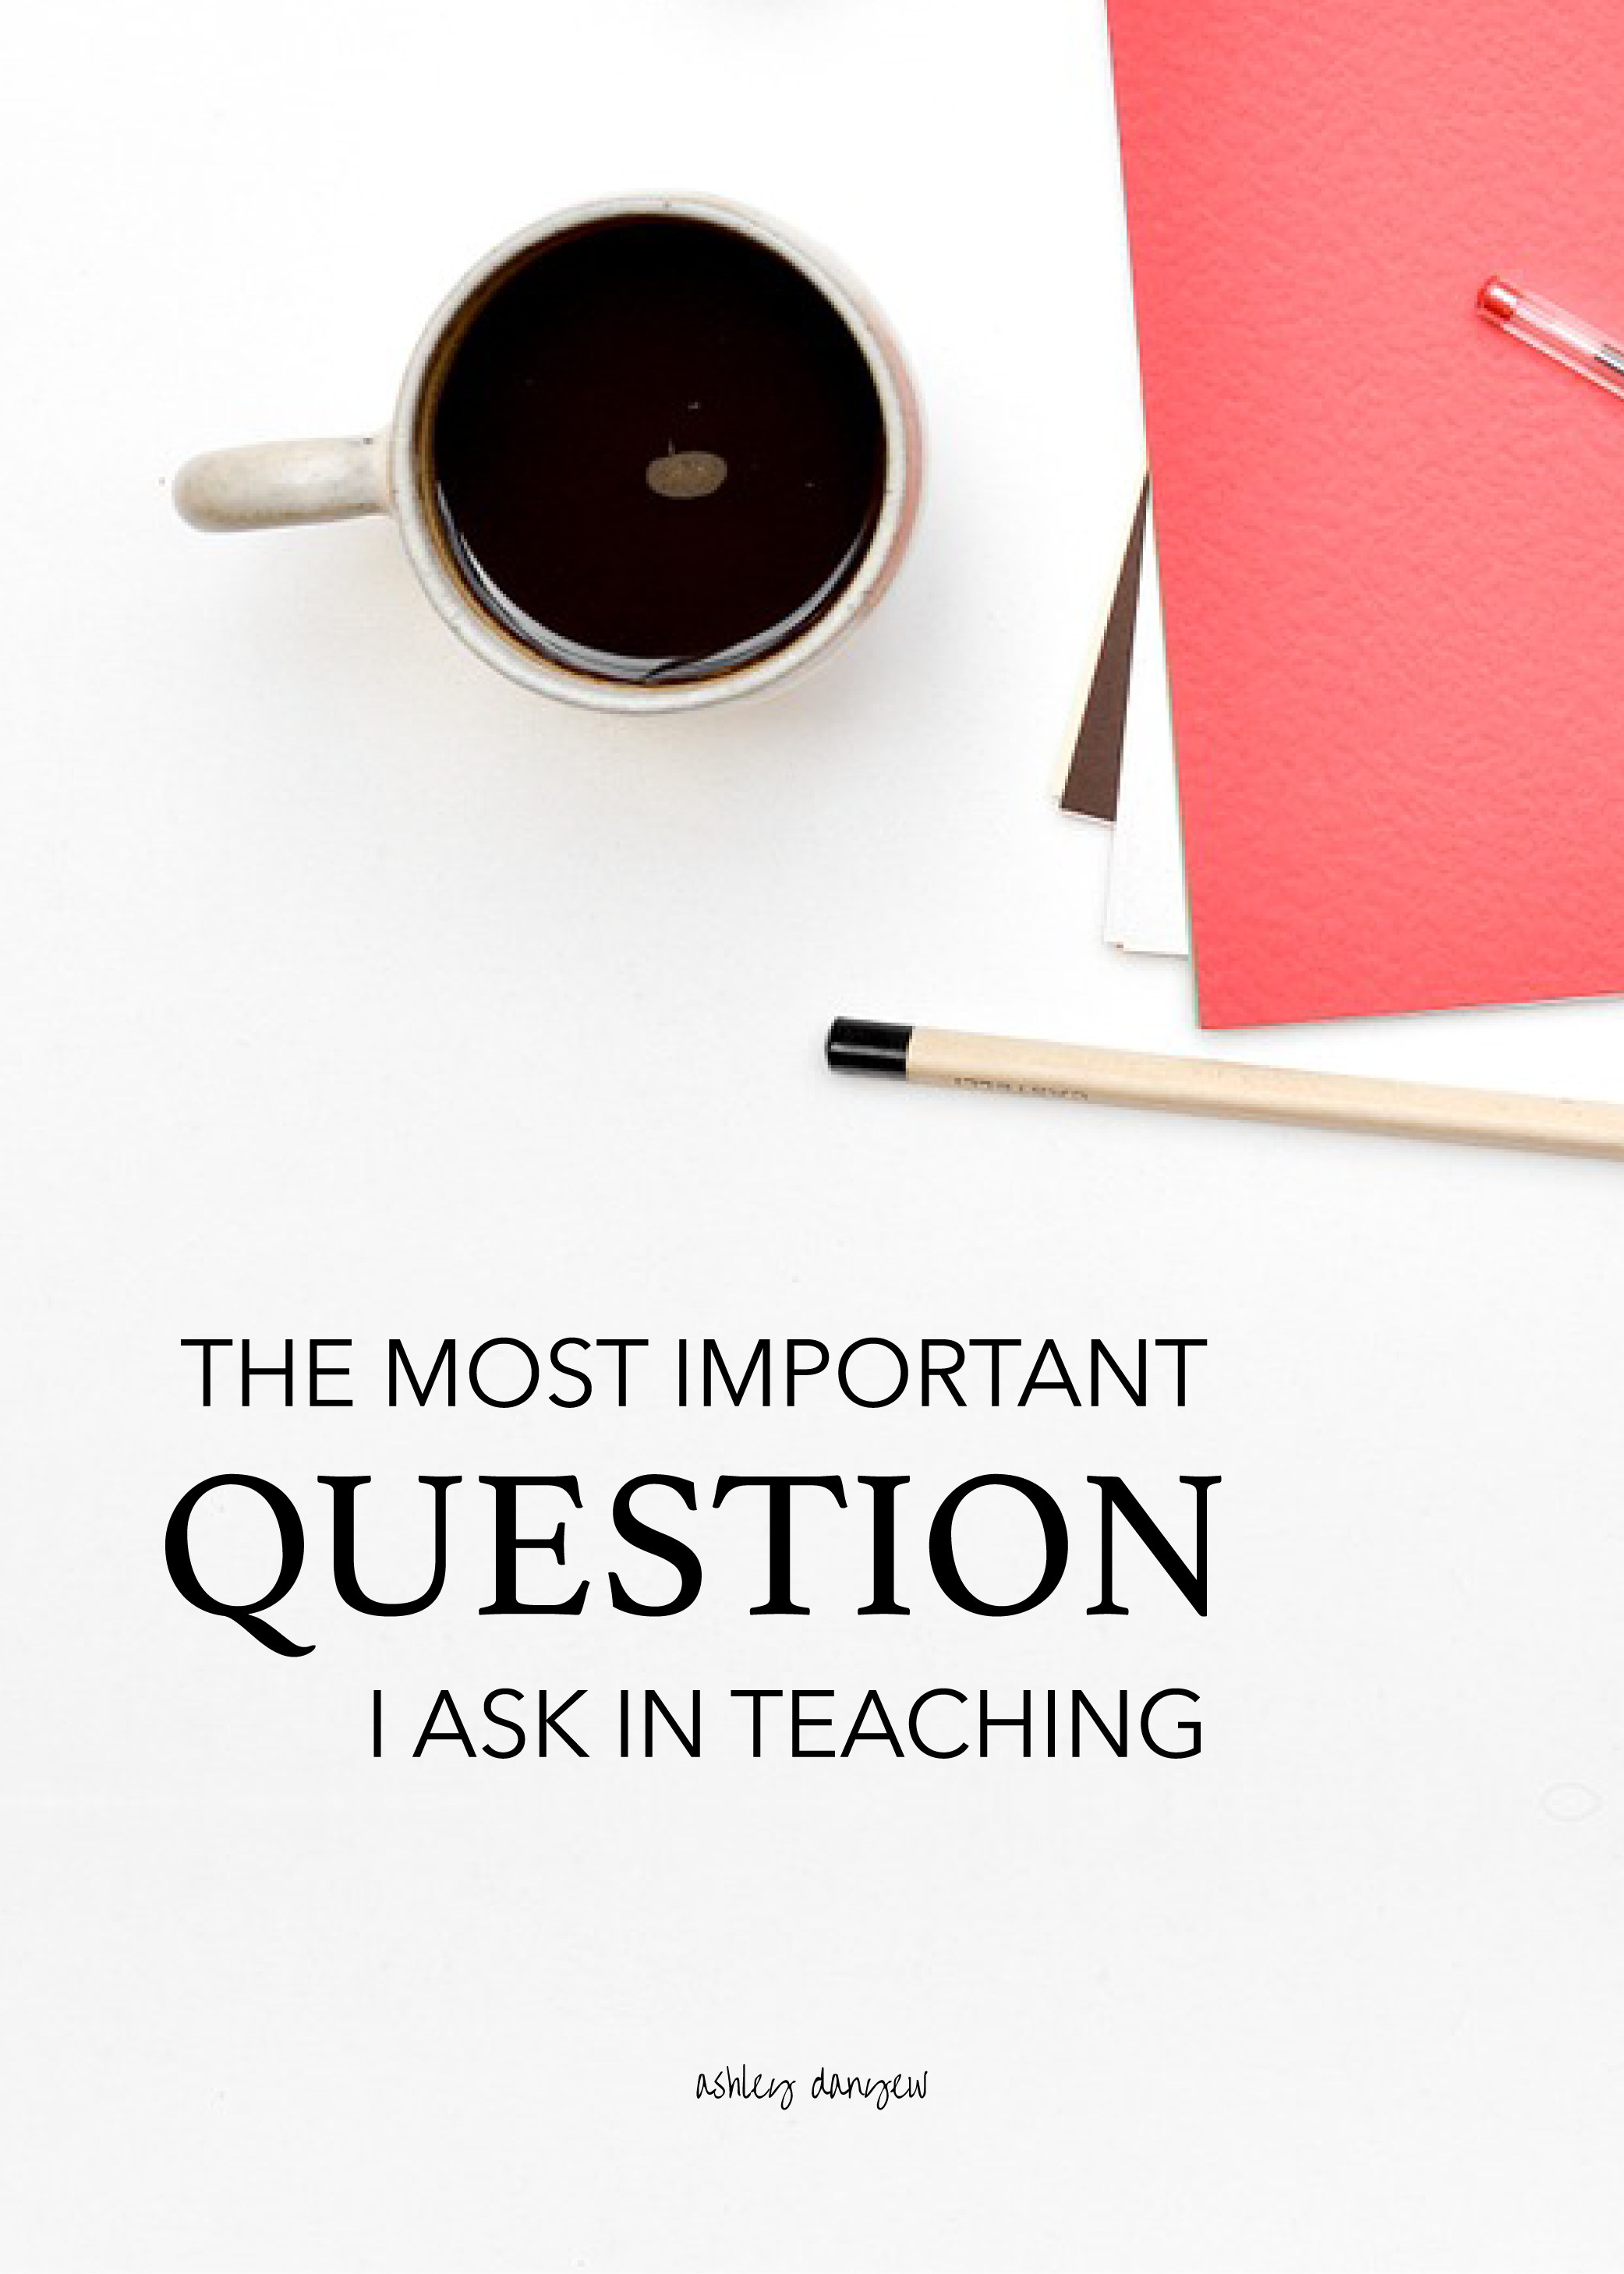 The-Most-Important-Question-I-Ask-In-Teaching-01.png